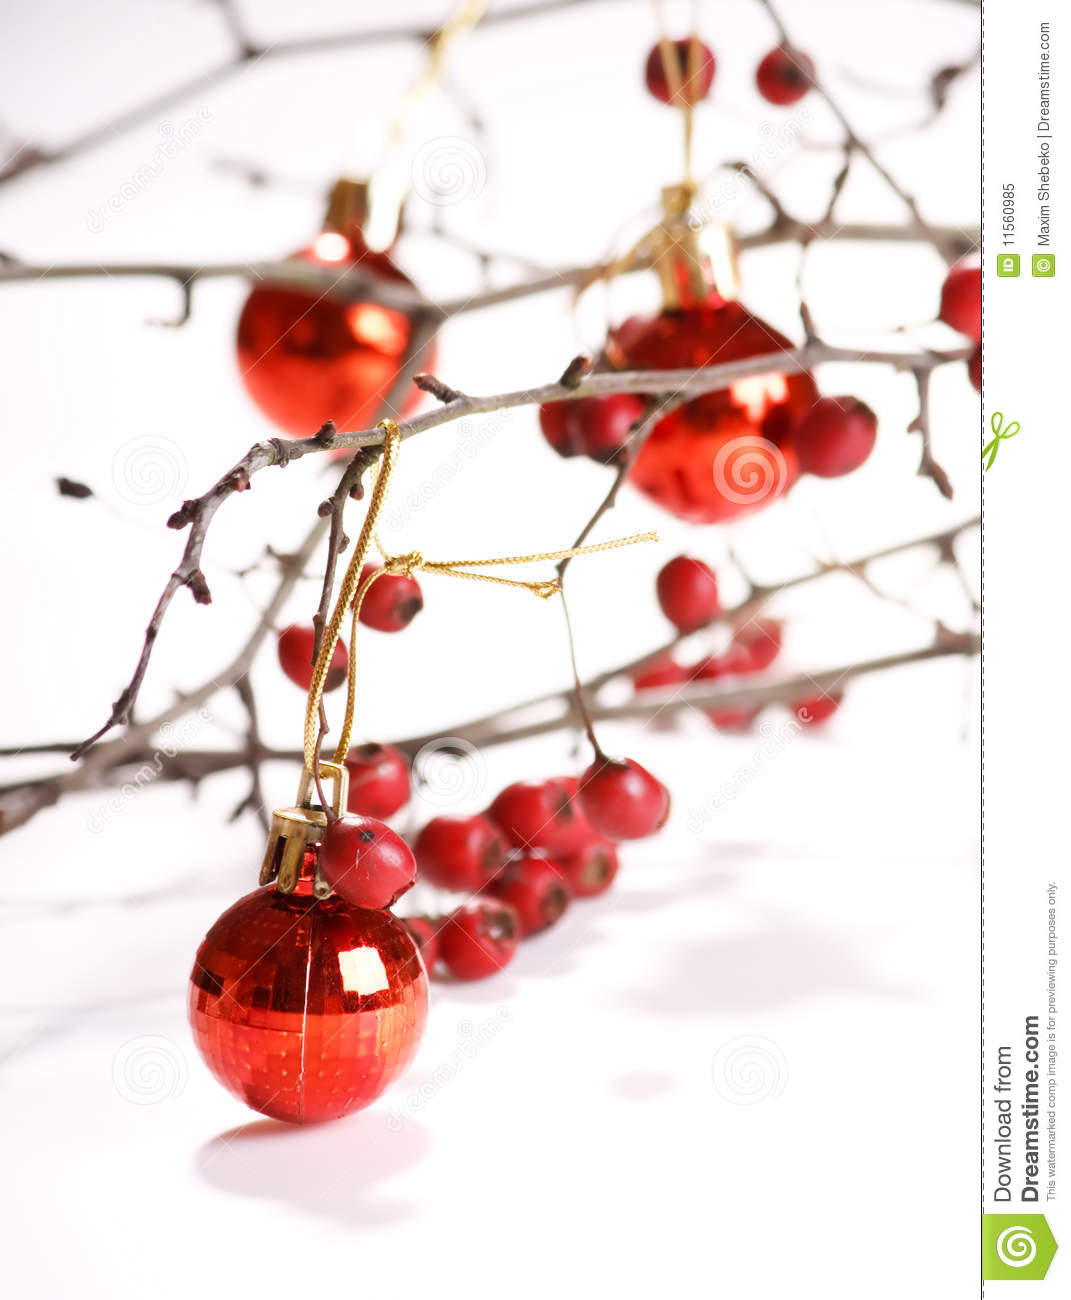 Winter Berries Royalty Free Stock Photo   Image  11560985